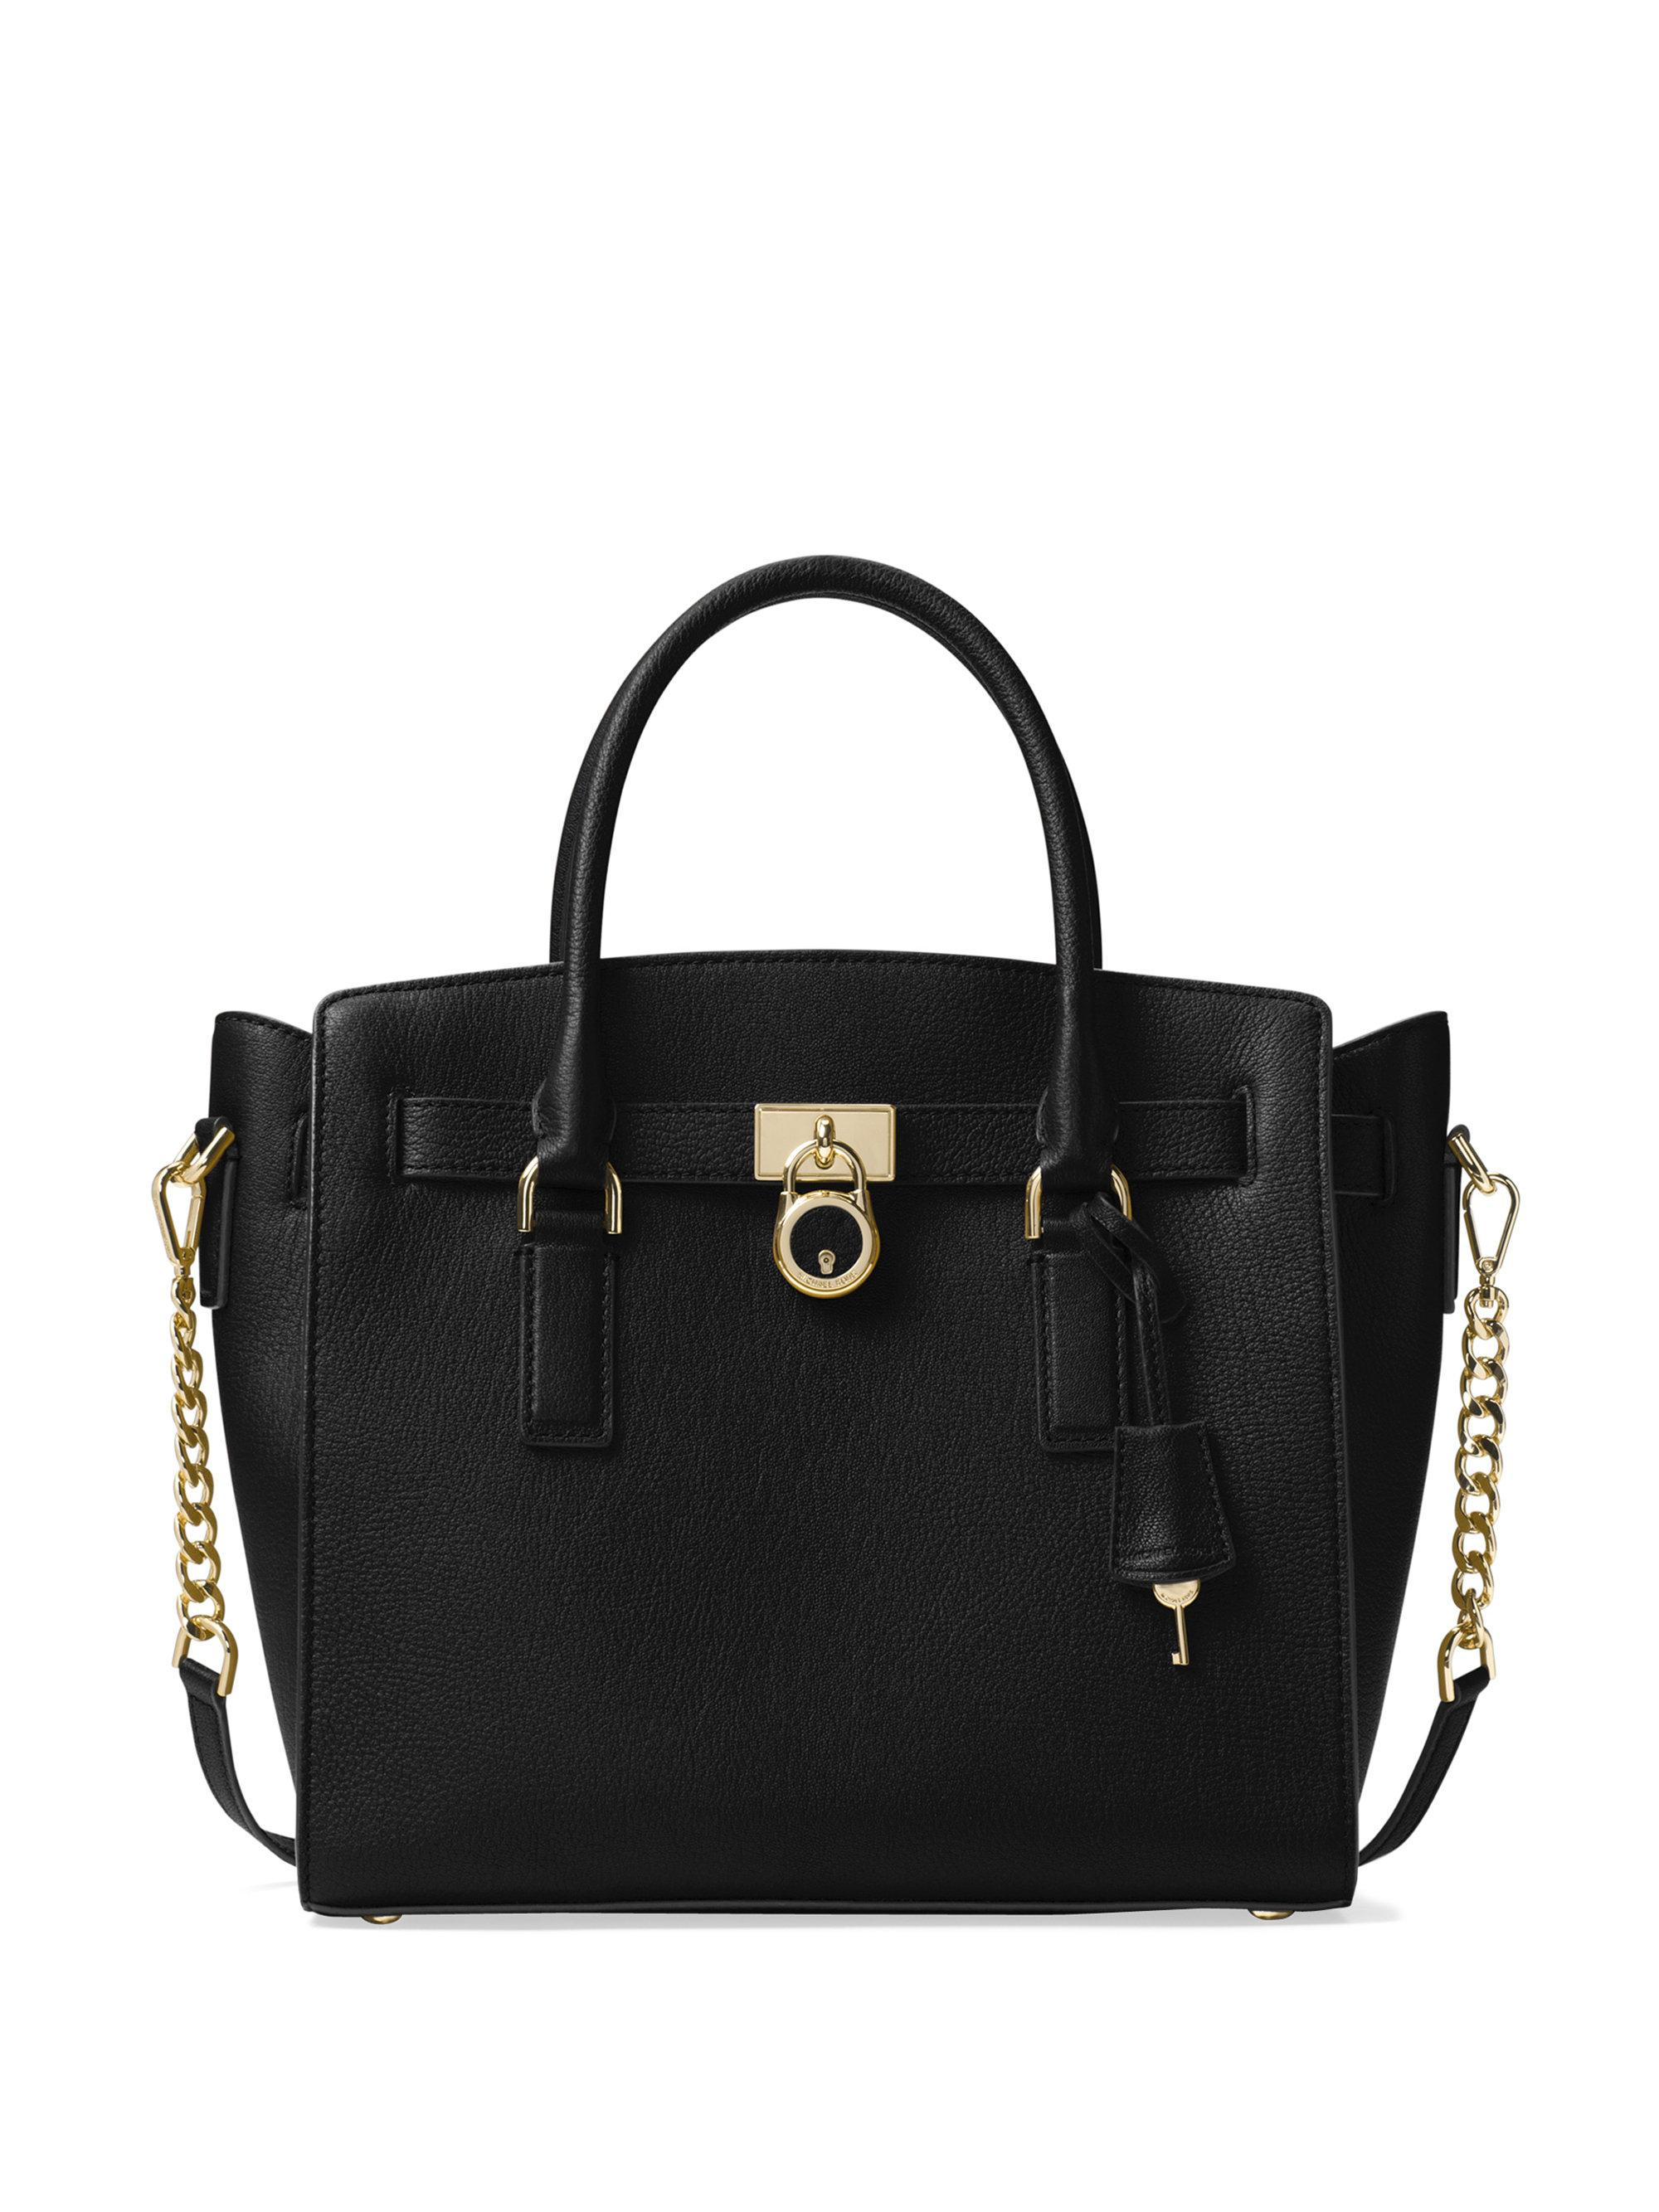 dac70531f6cfff Michael Kors Hamilton Large Black Pebbled Leather Satchel Bag ...